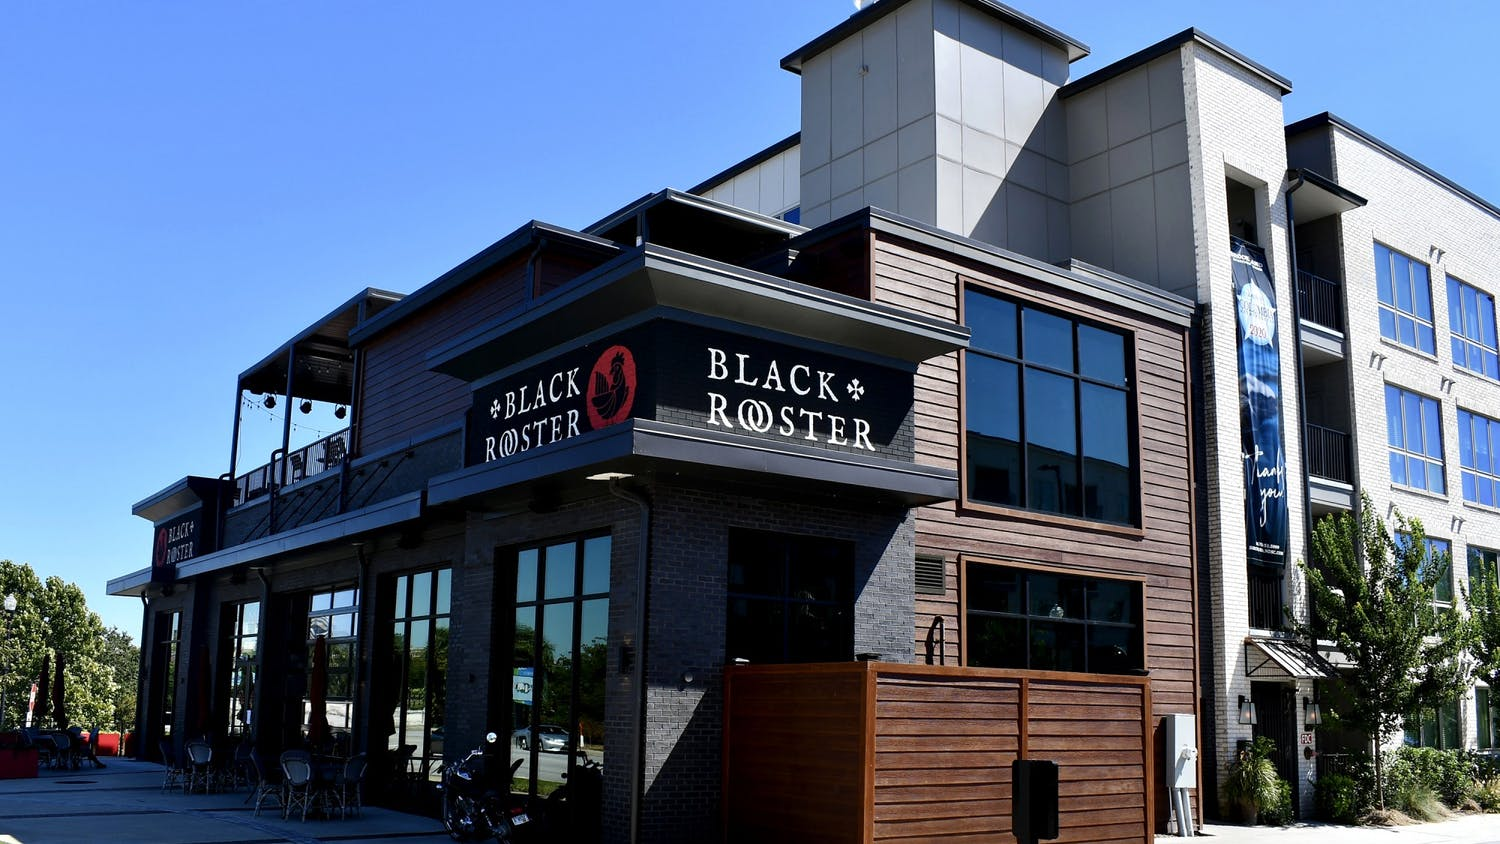 Black rooster offers views of the river and a rooftop area that is a favorite spot for customers.